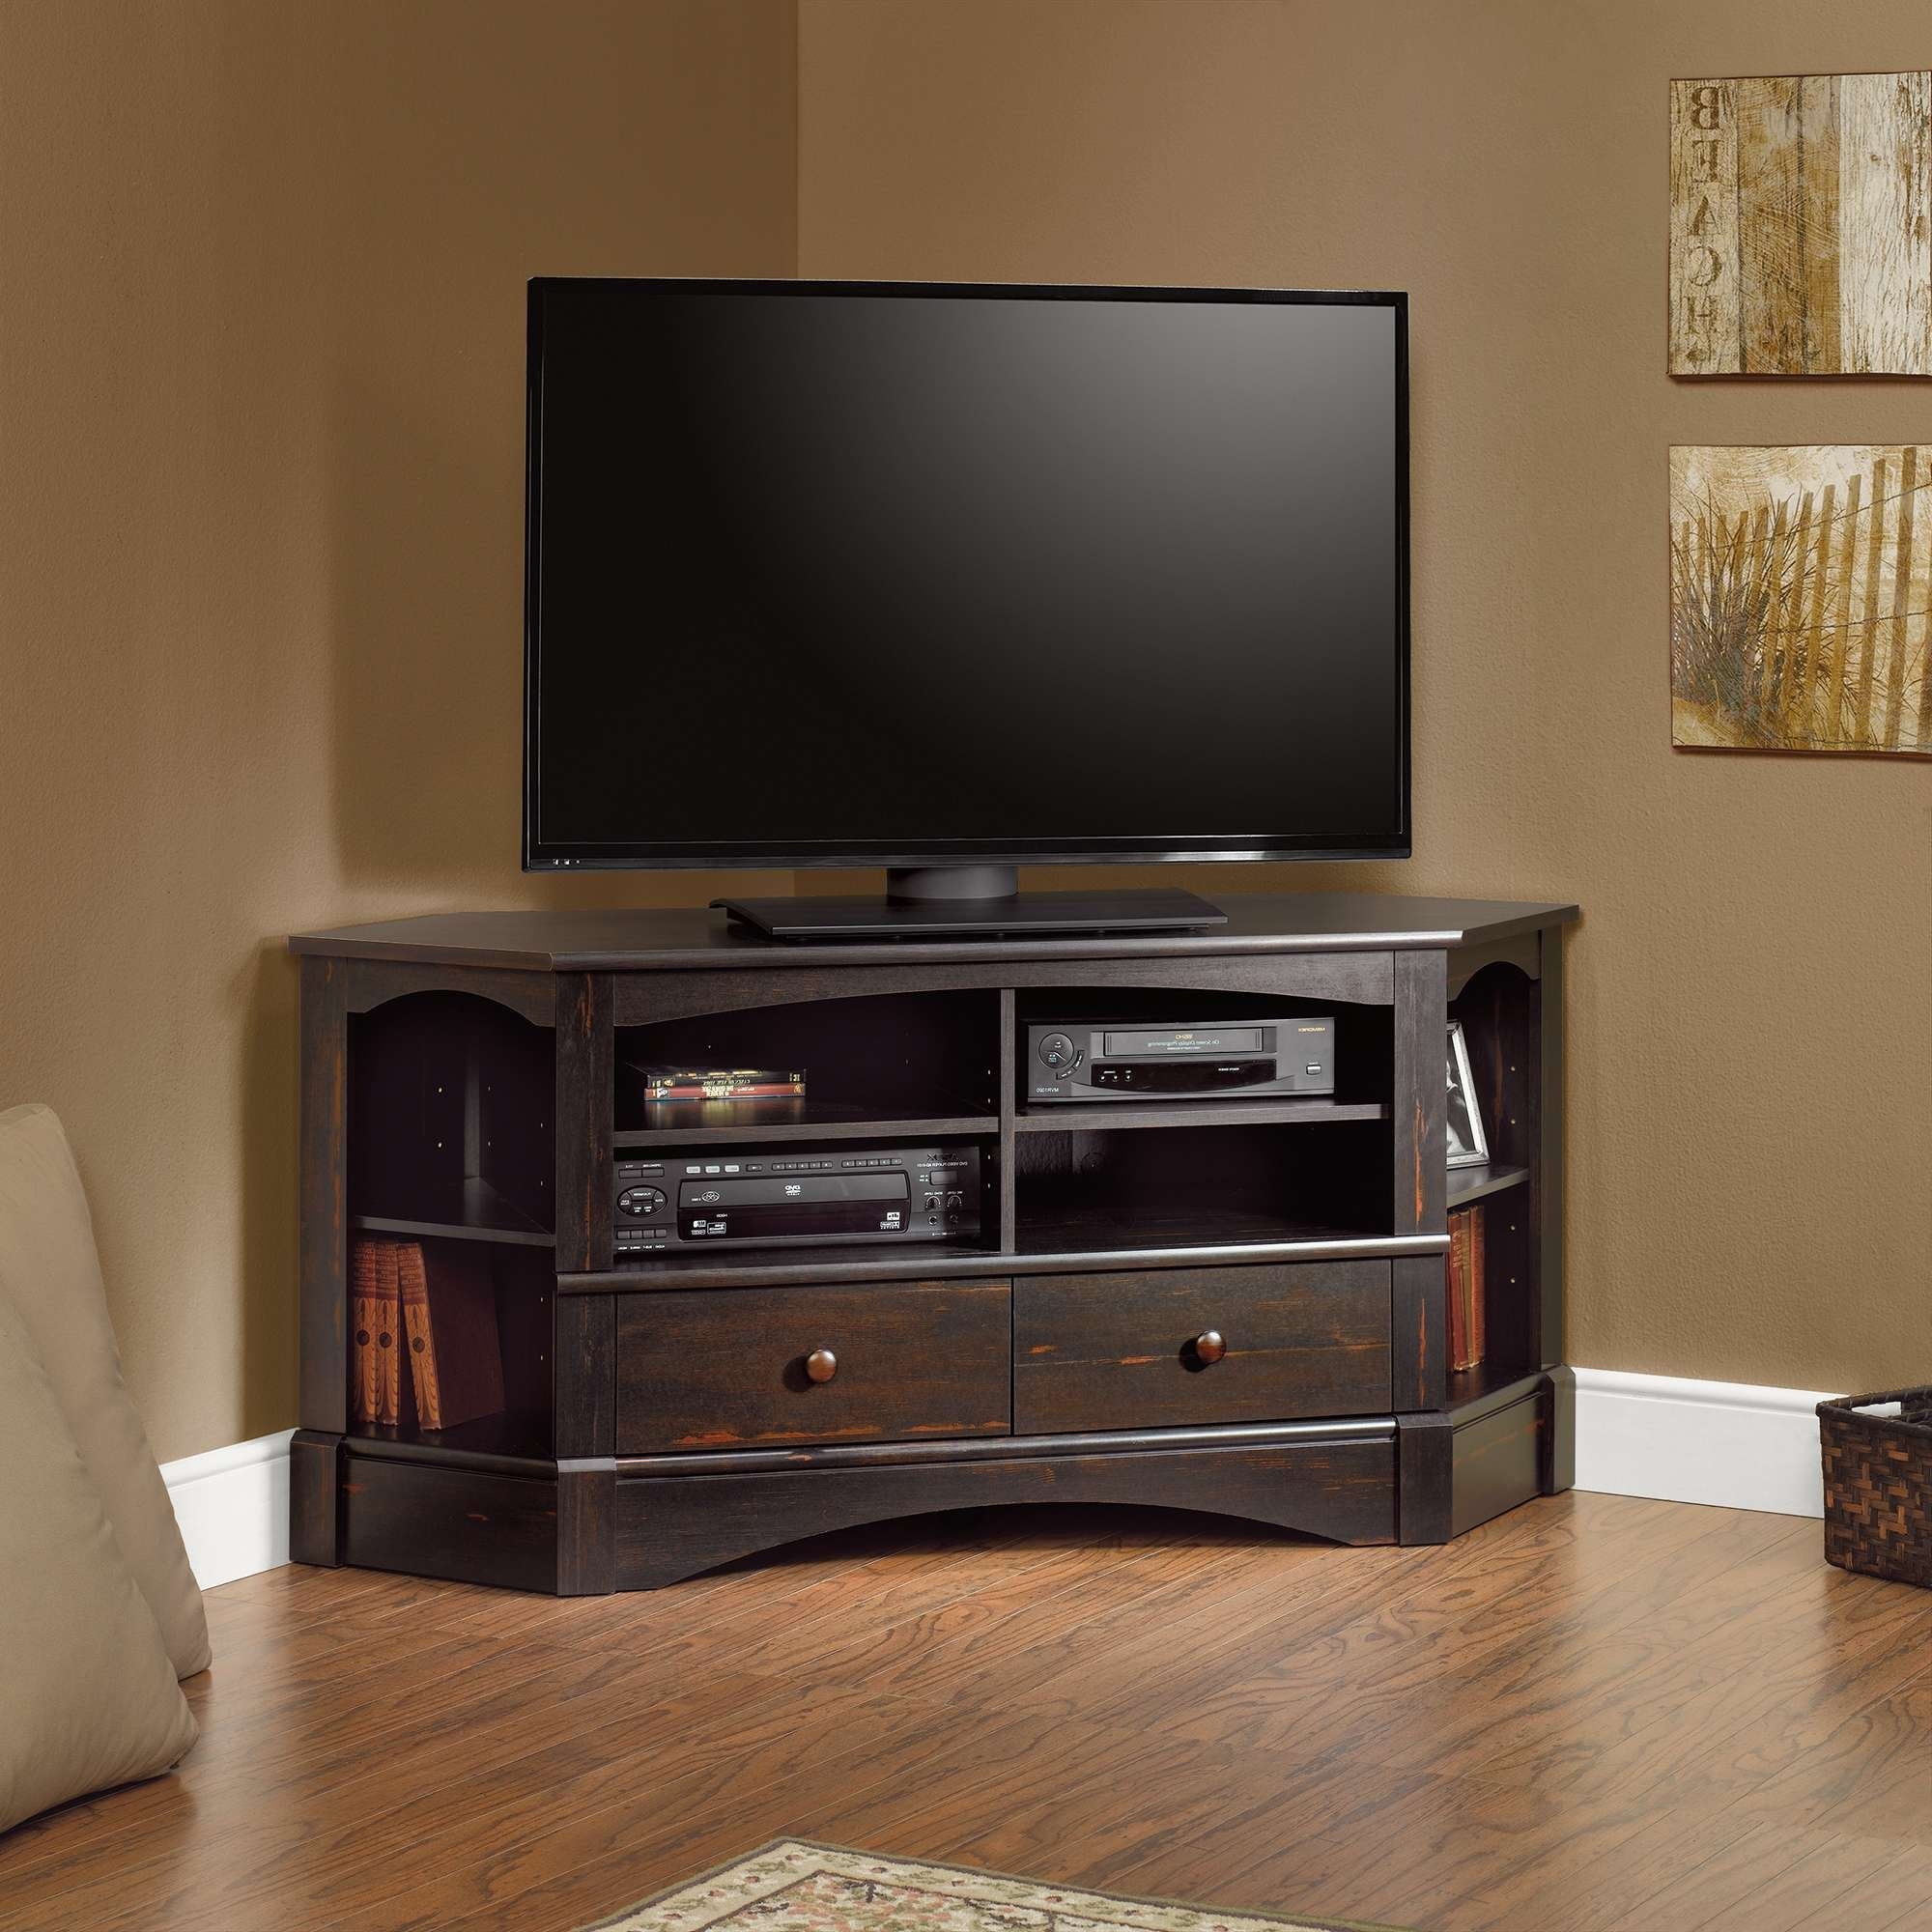 Tall Tv Stand For Bedroom Trends Ideas Corner Creative Cabinets Intended For Tall Tv Cabinets Corner Unit (View 16 of 20)